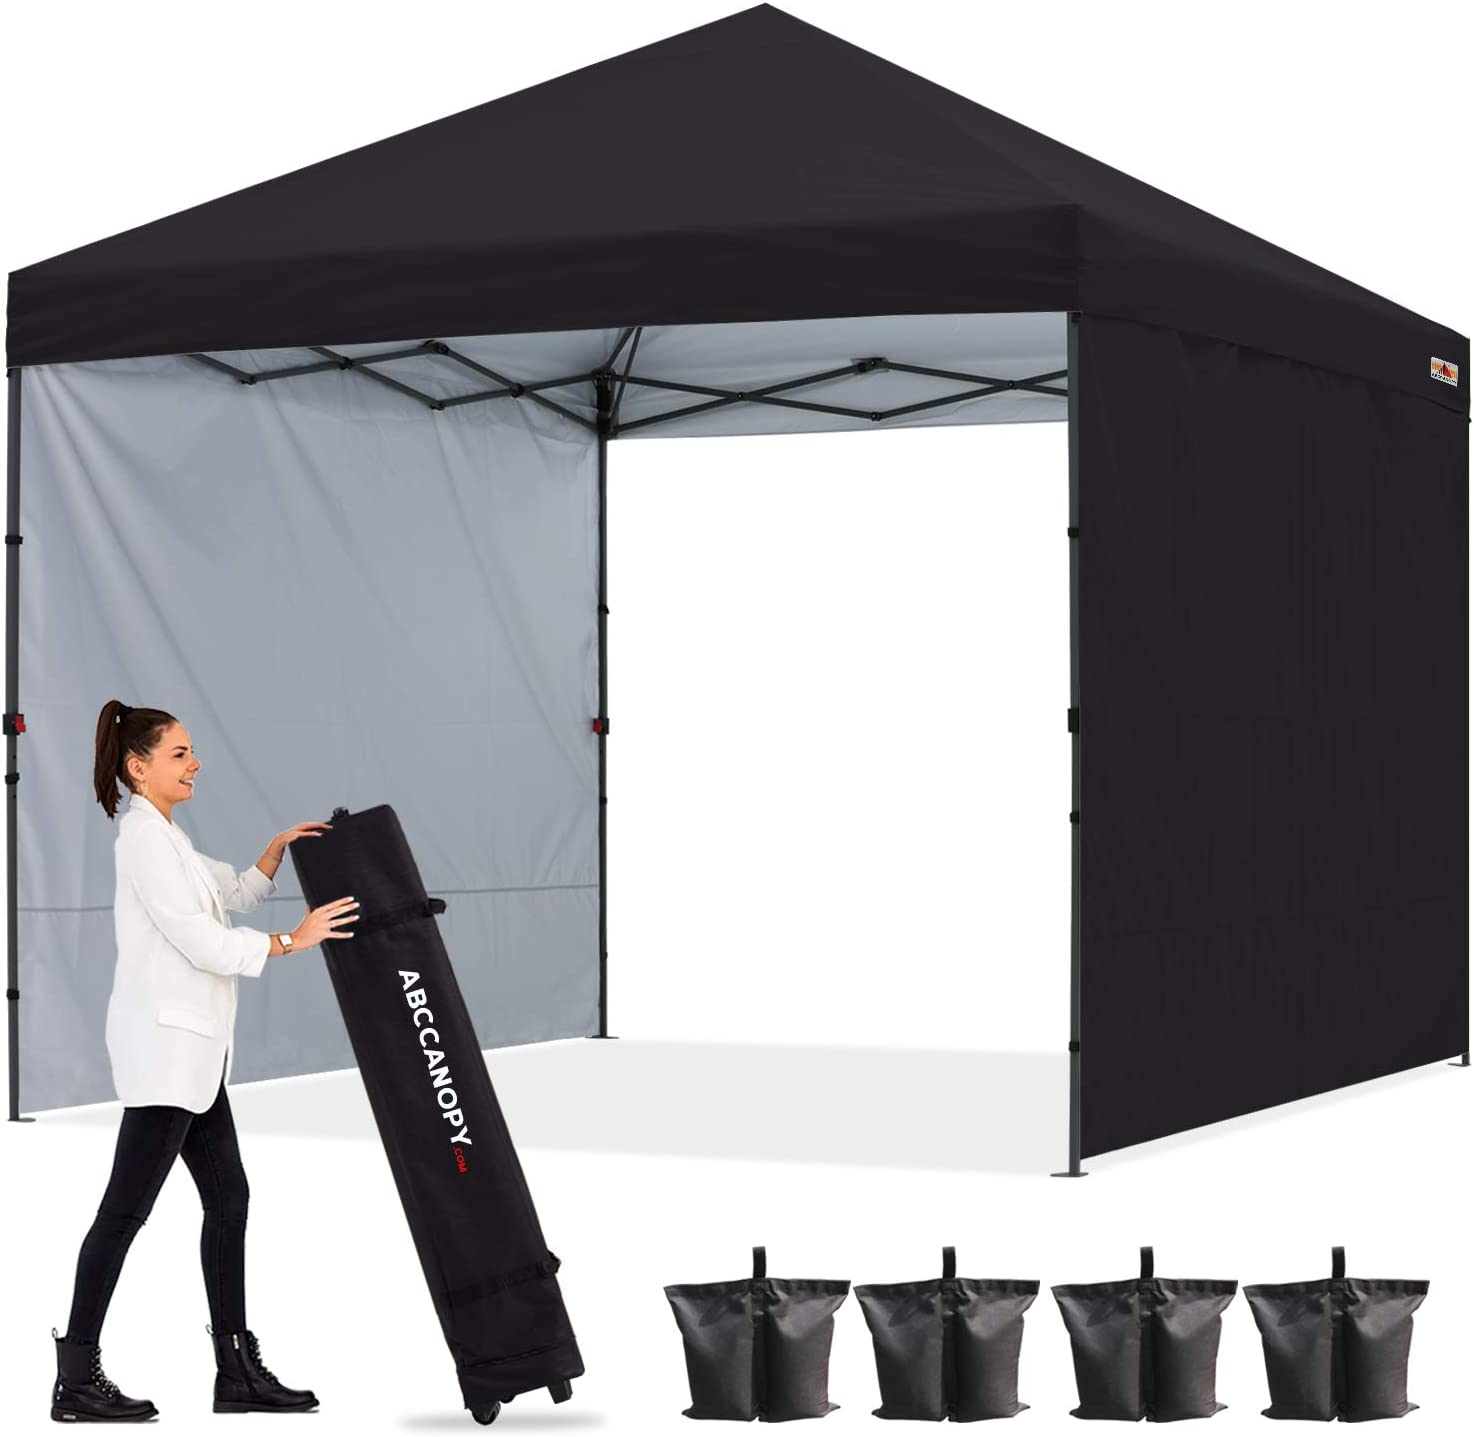 ABCCANOPY Outdoor Easy Pop up Canopy Tent Indianapolis Mall B free with 8x8 Wall 2 Sun